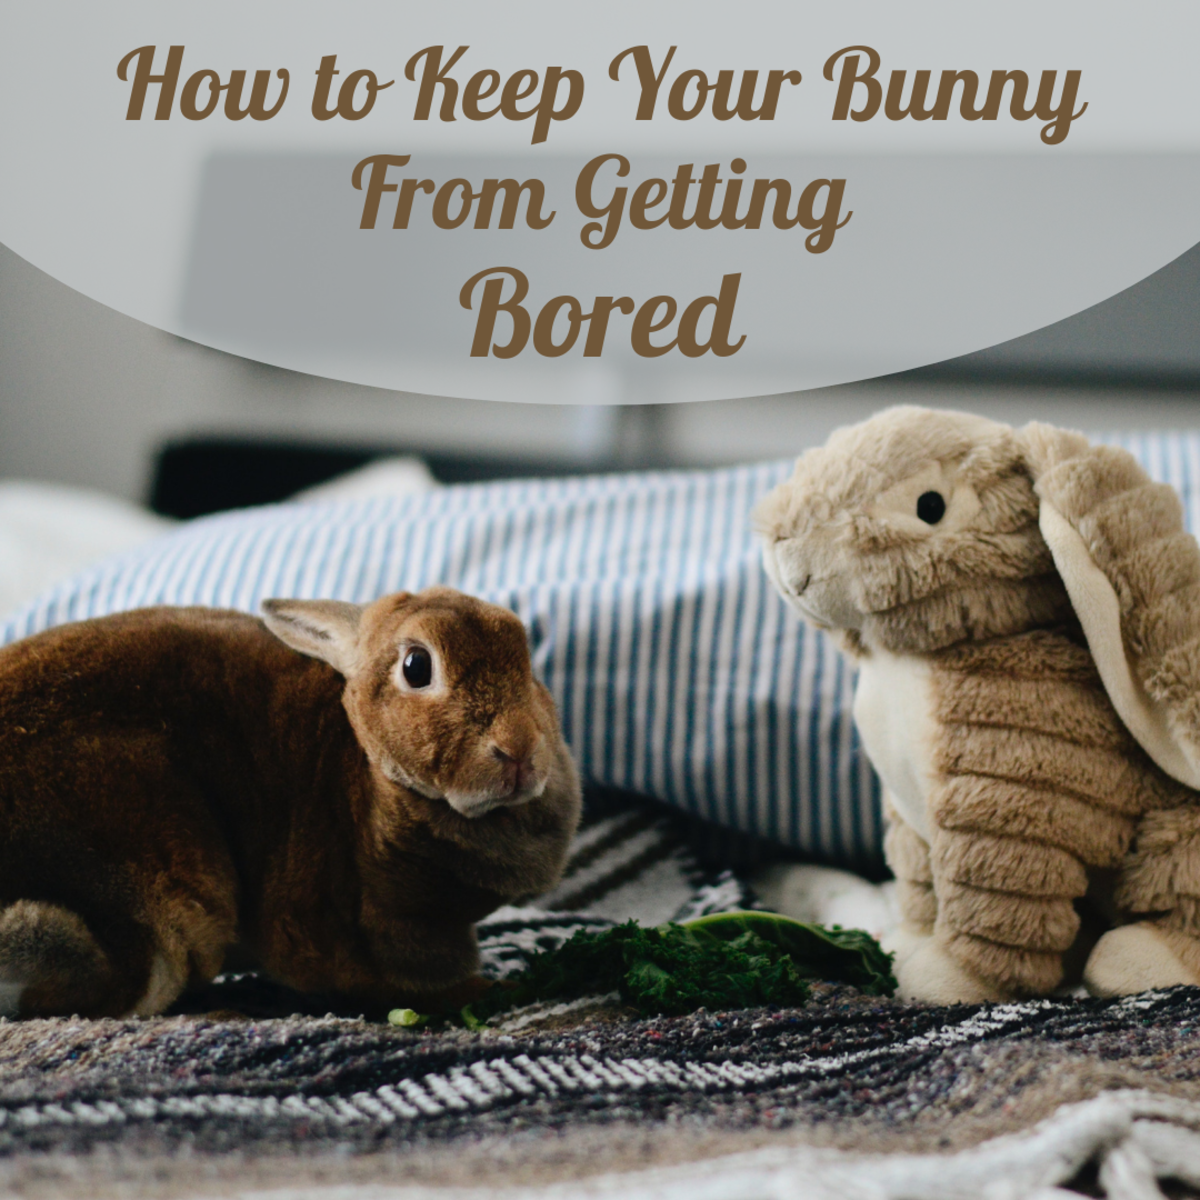 The Bored Bunny: How to Entertain Your Rabbit